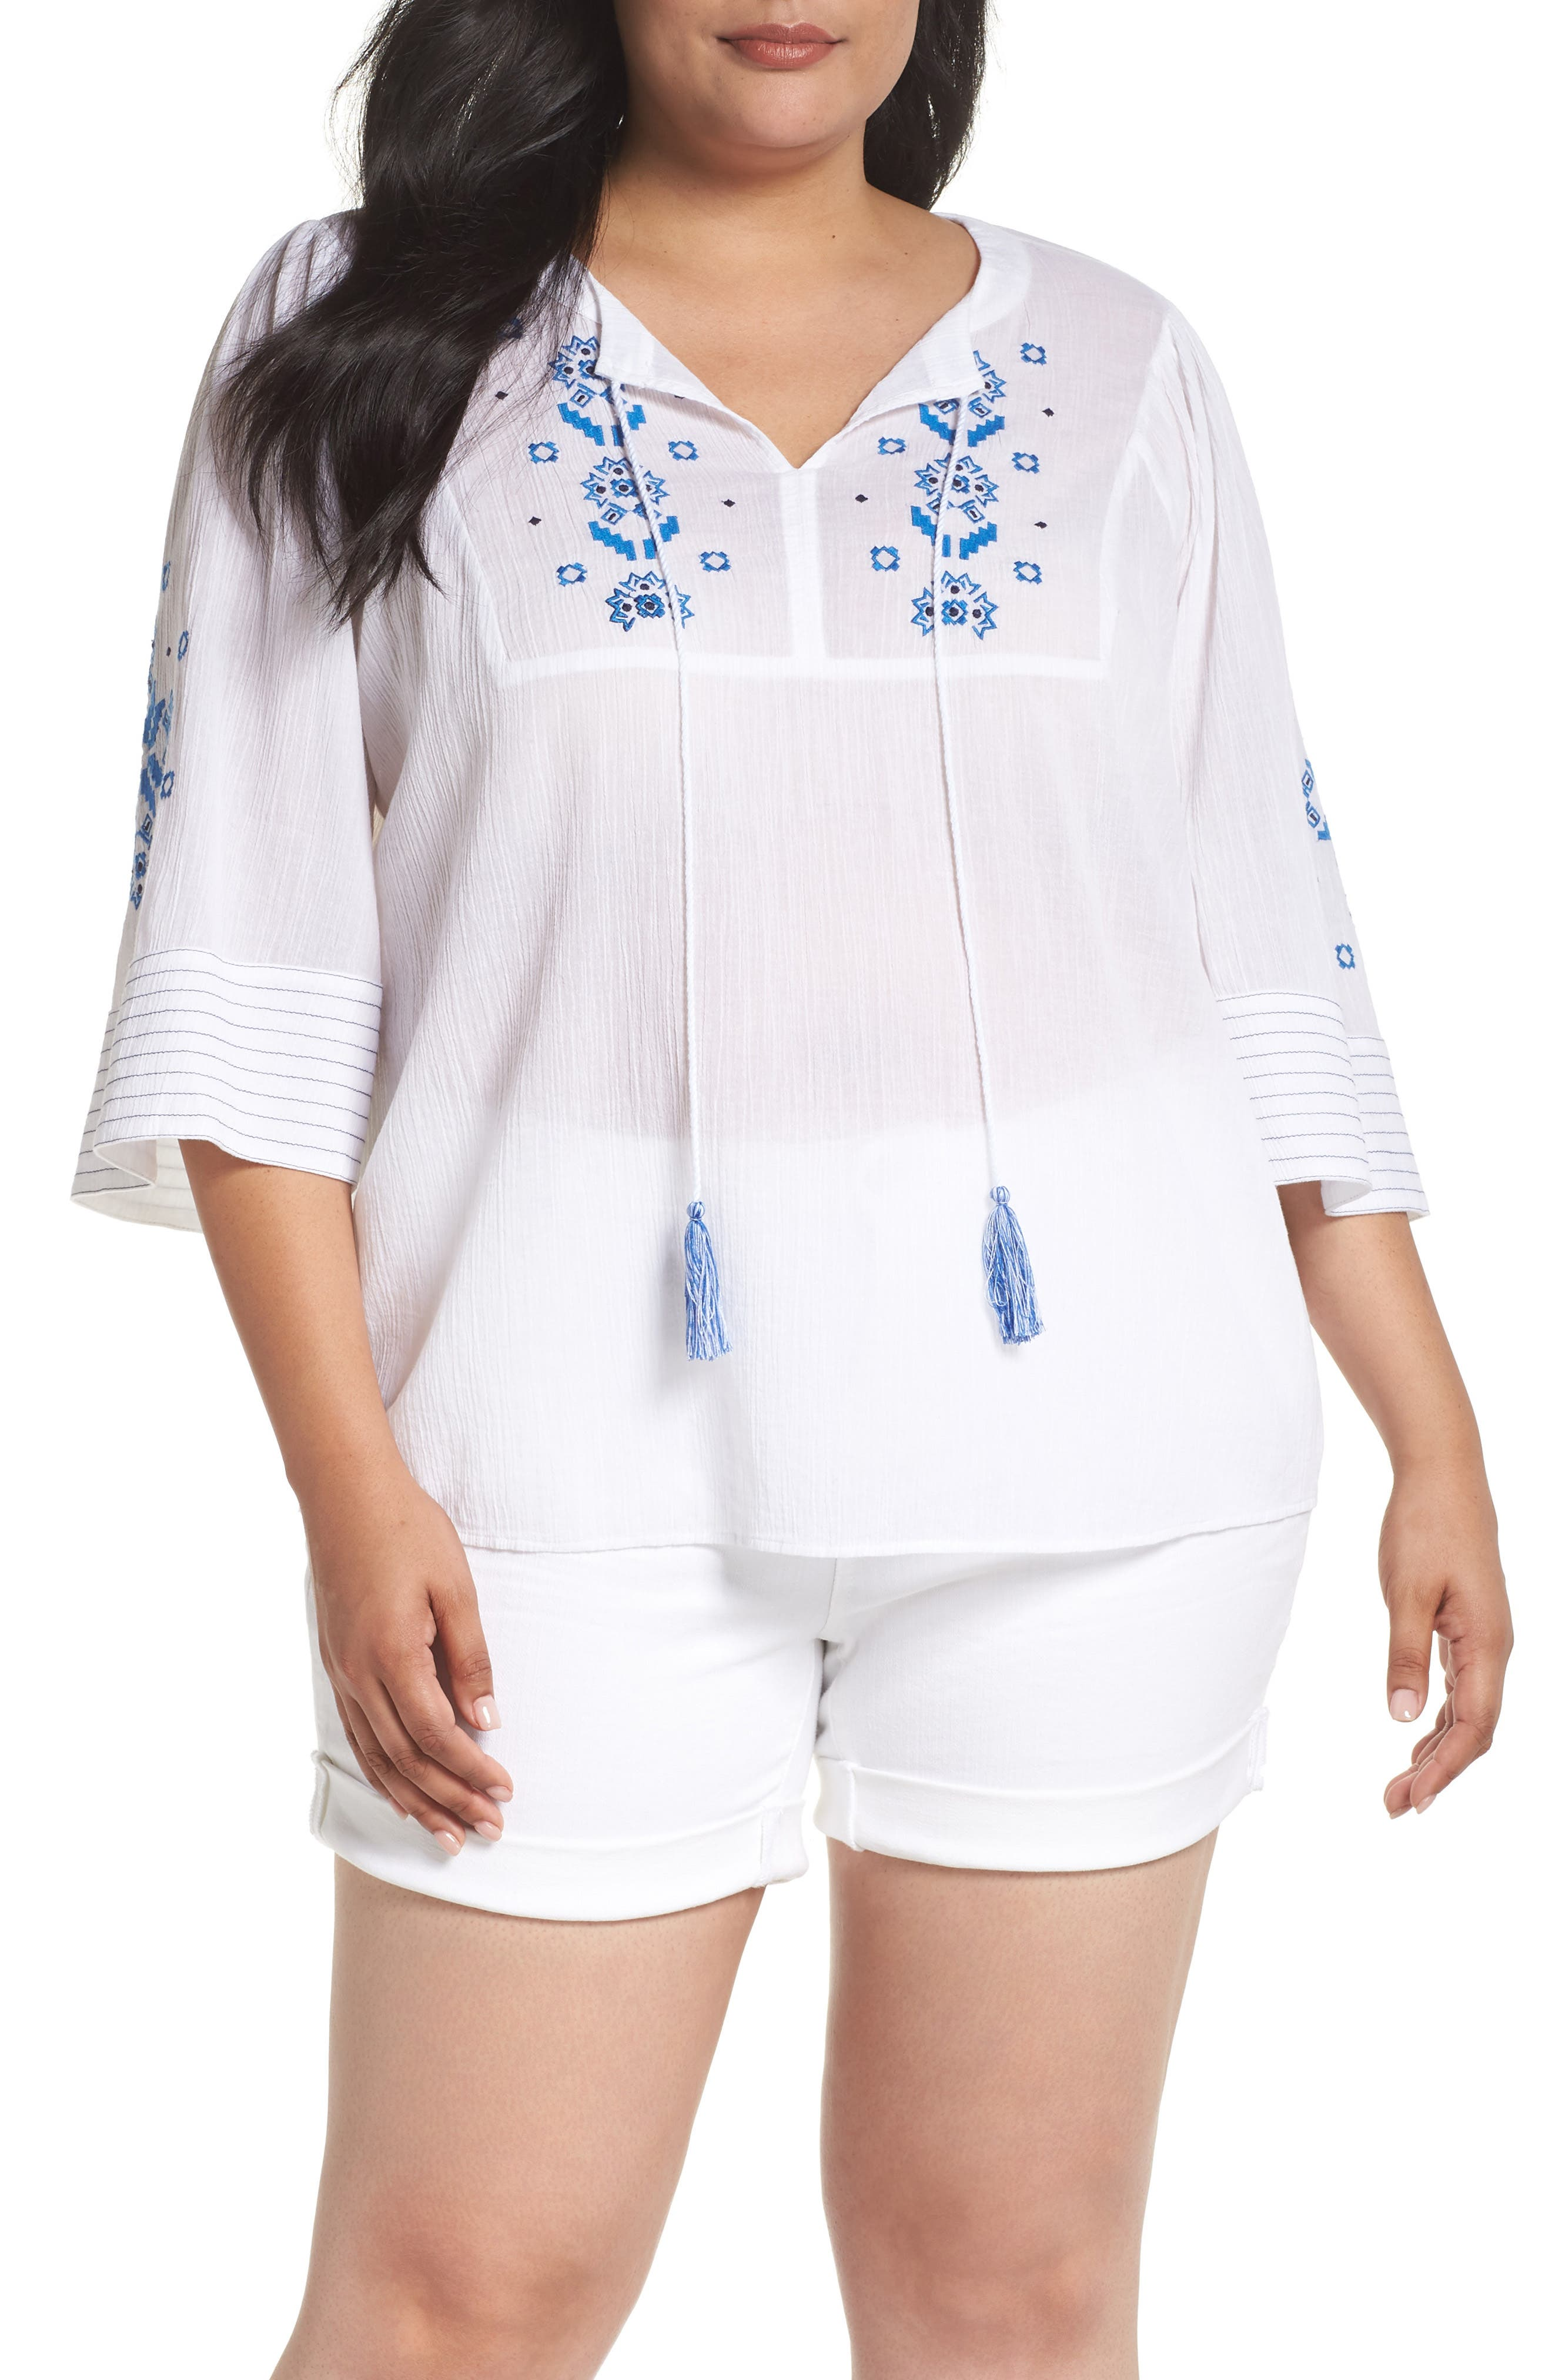 VINCE CAMUTO,                             Bell Sleeve Embroidered Top,                             Main thumbnail 1, color,                             145